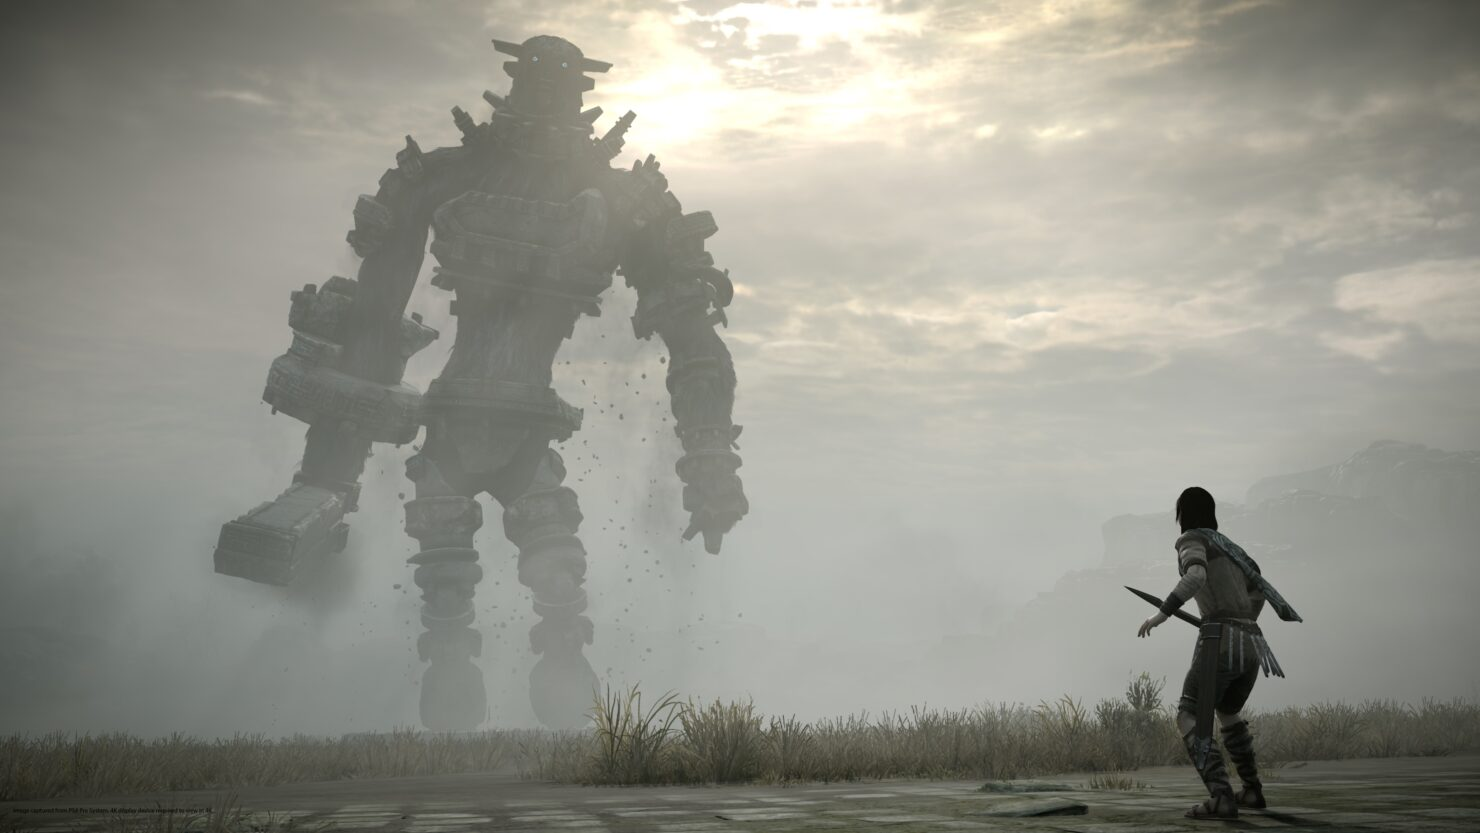 shadow-of-the-colossus-on-ps4_38043101335_o